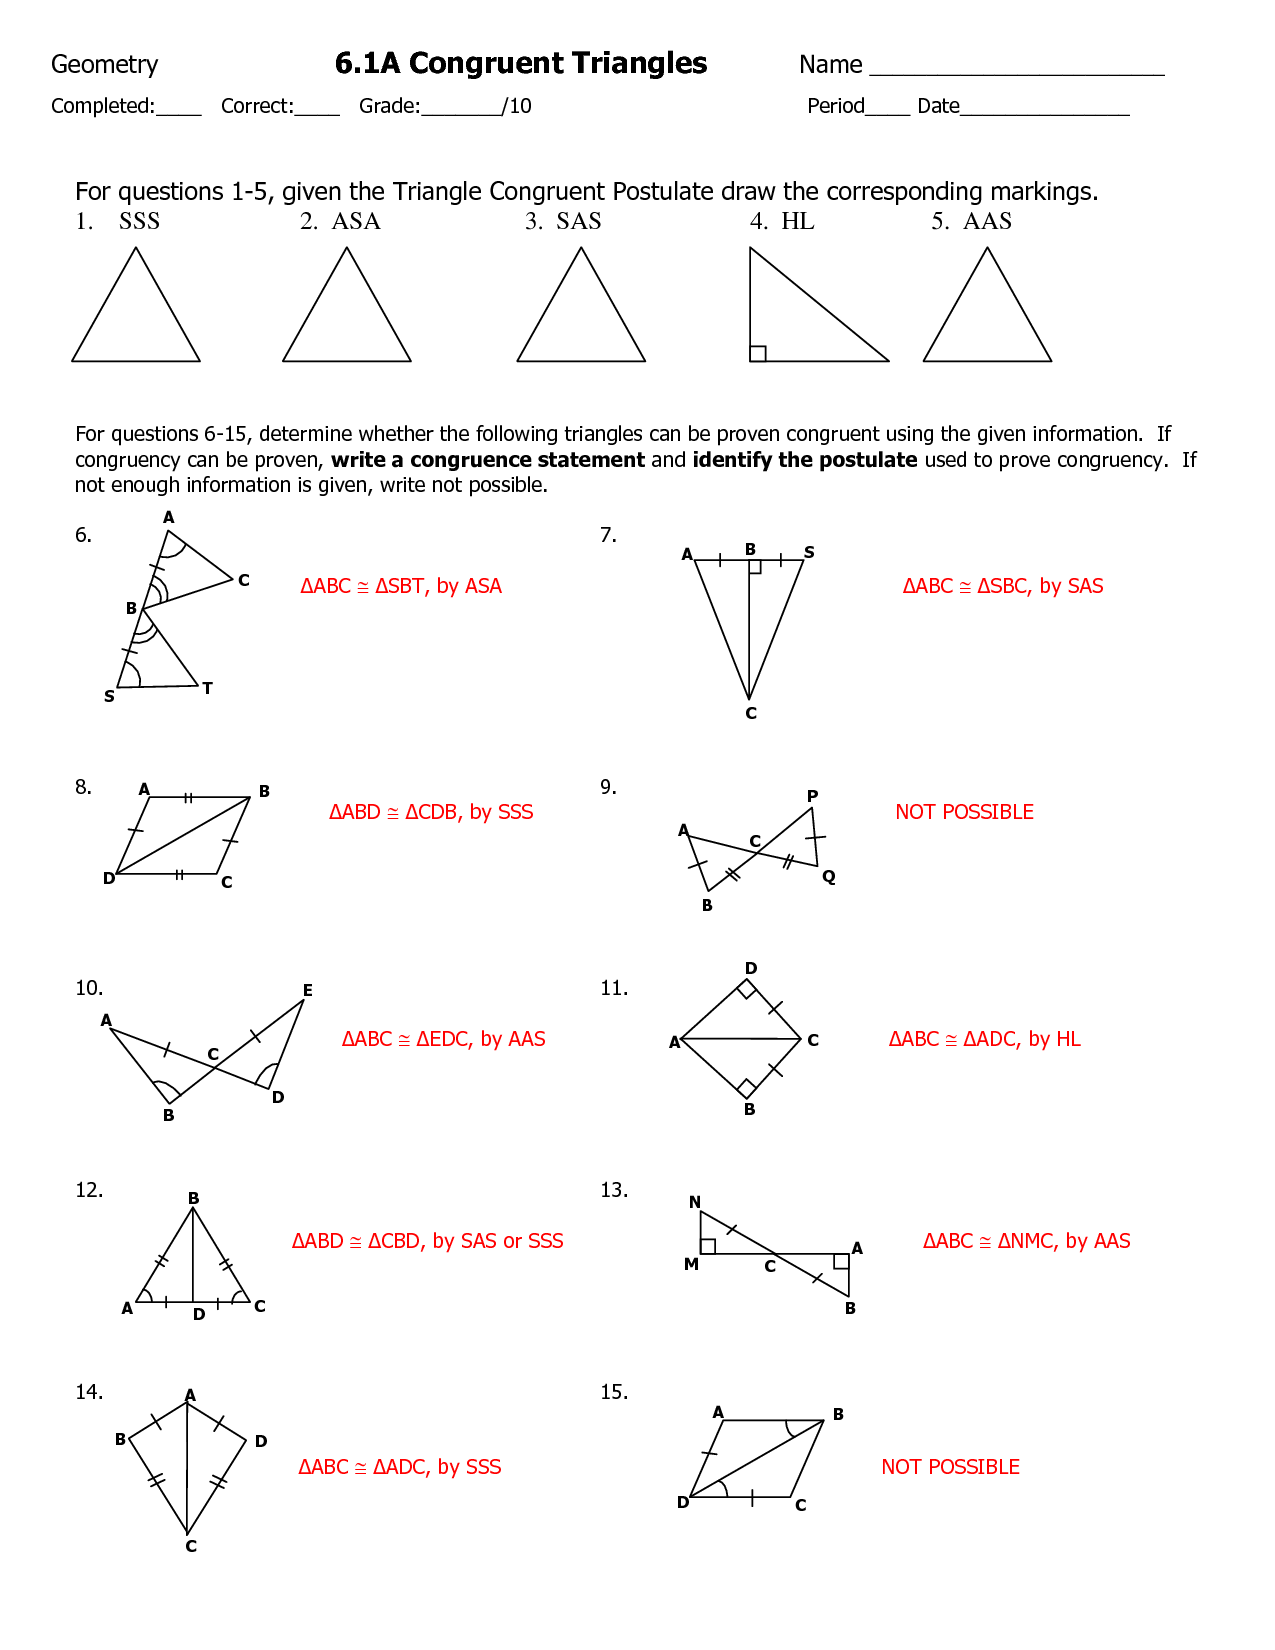 Congruent Triangles Worksheet With Answers Geometry